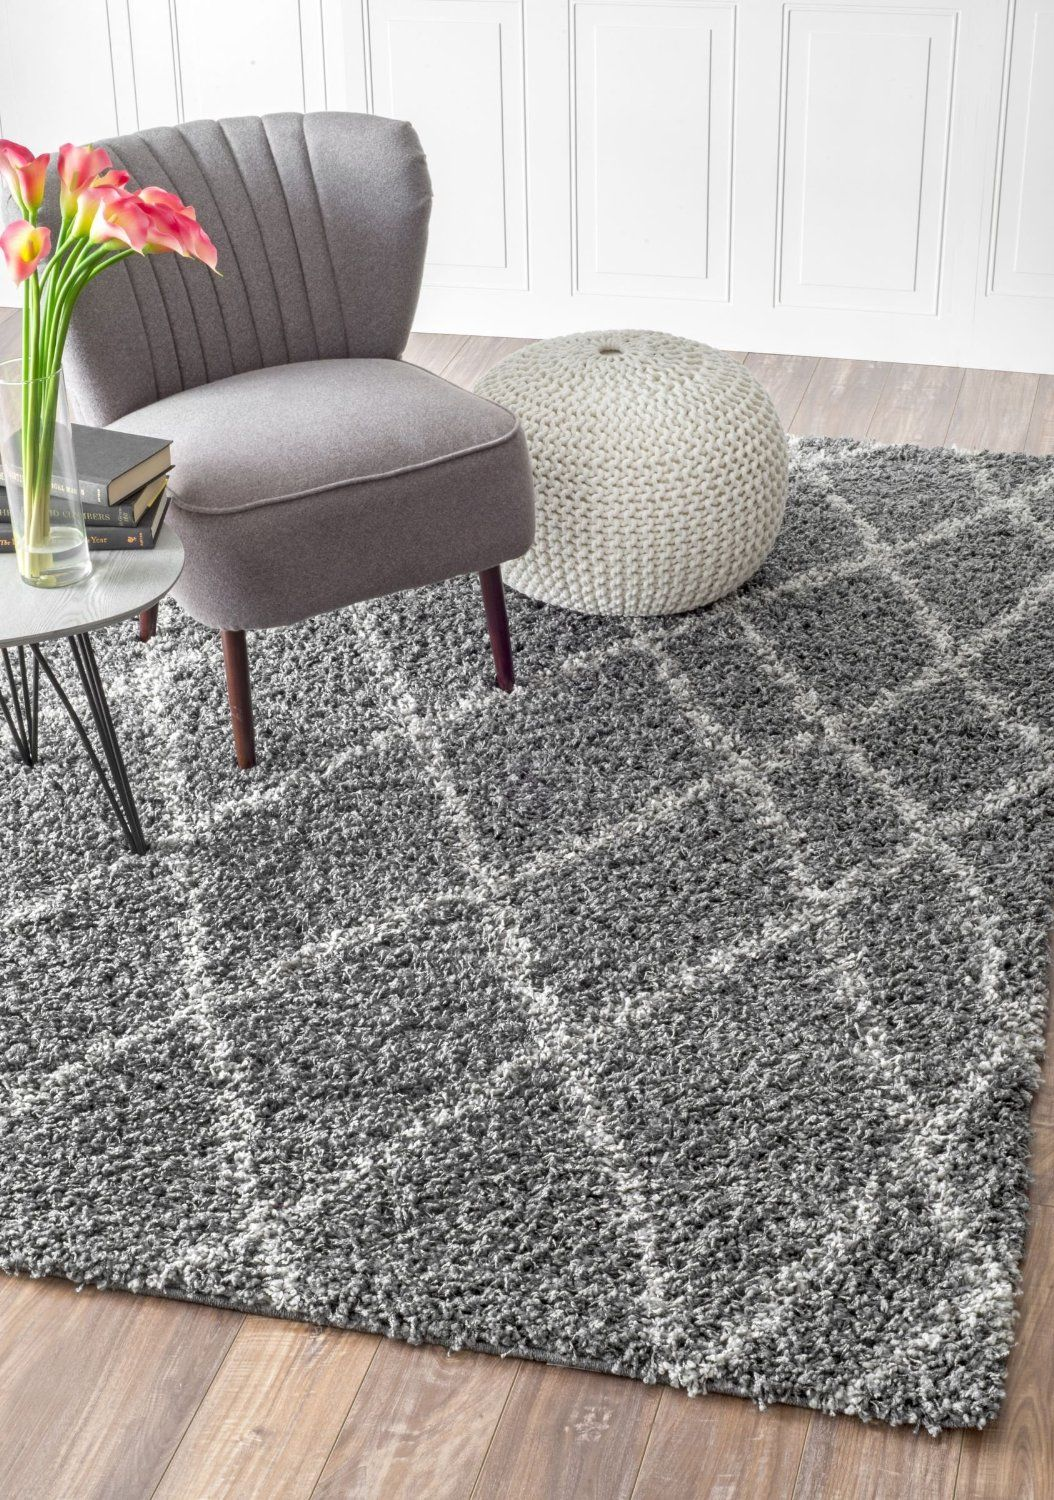 shag rug gray design ideas modern luxury  rugs carpet ideas  - shag rug gray design ideas modern luxury  rugs carpet ideas